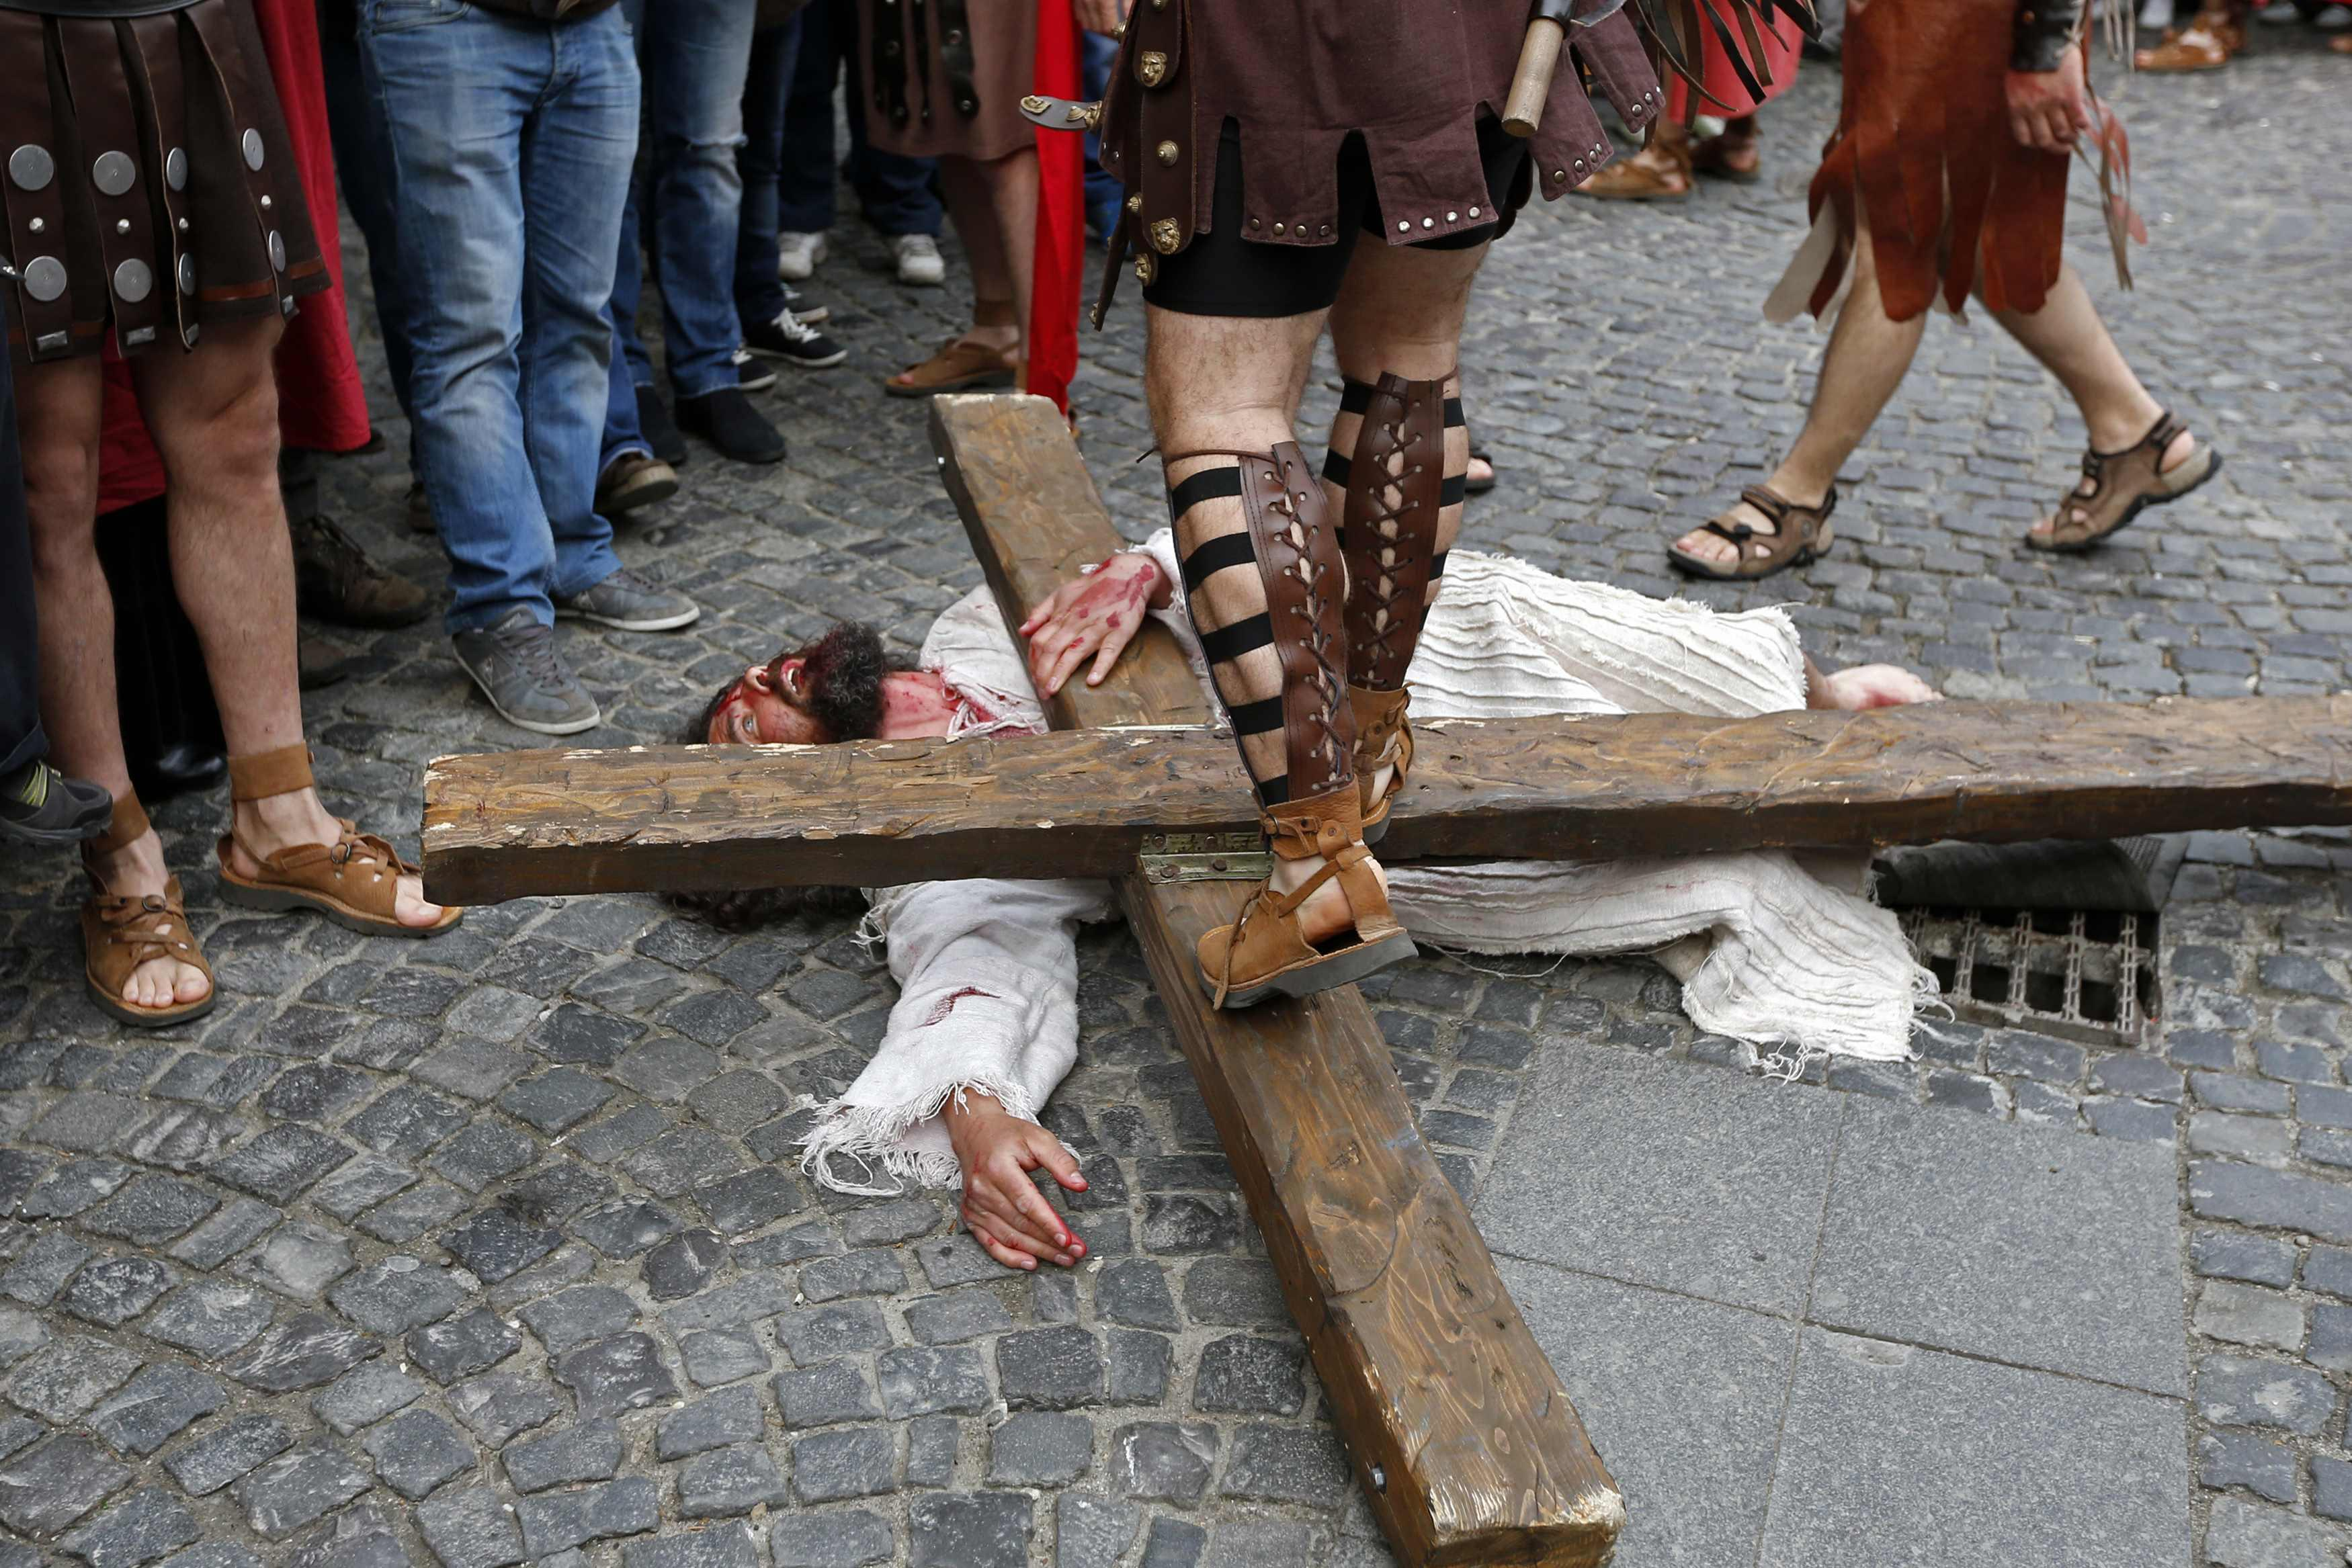 Holy Week - Via Crucis Reenactment